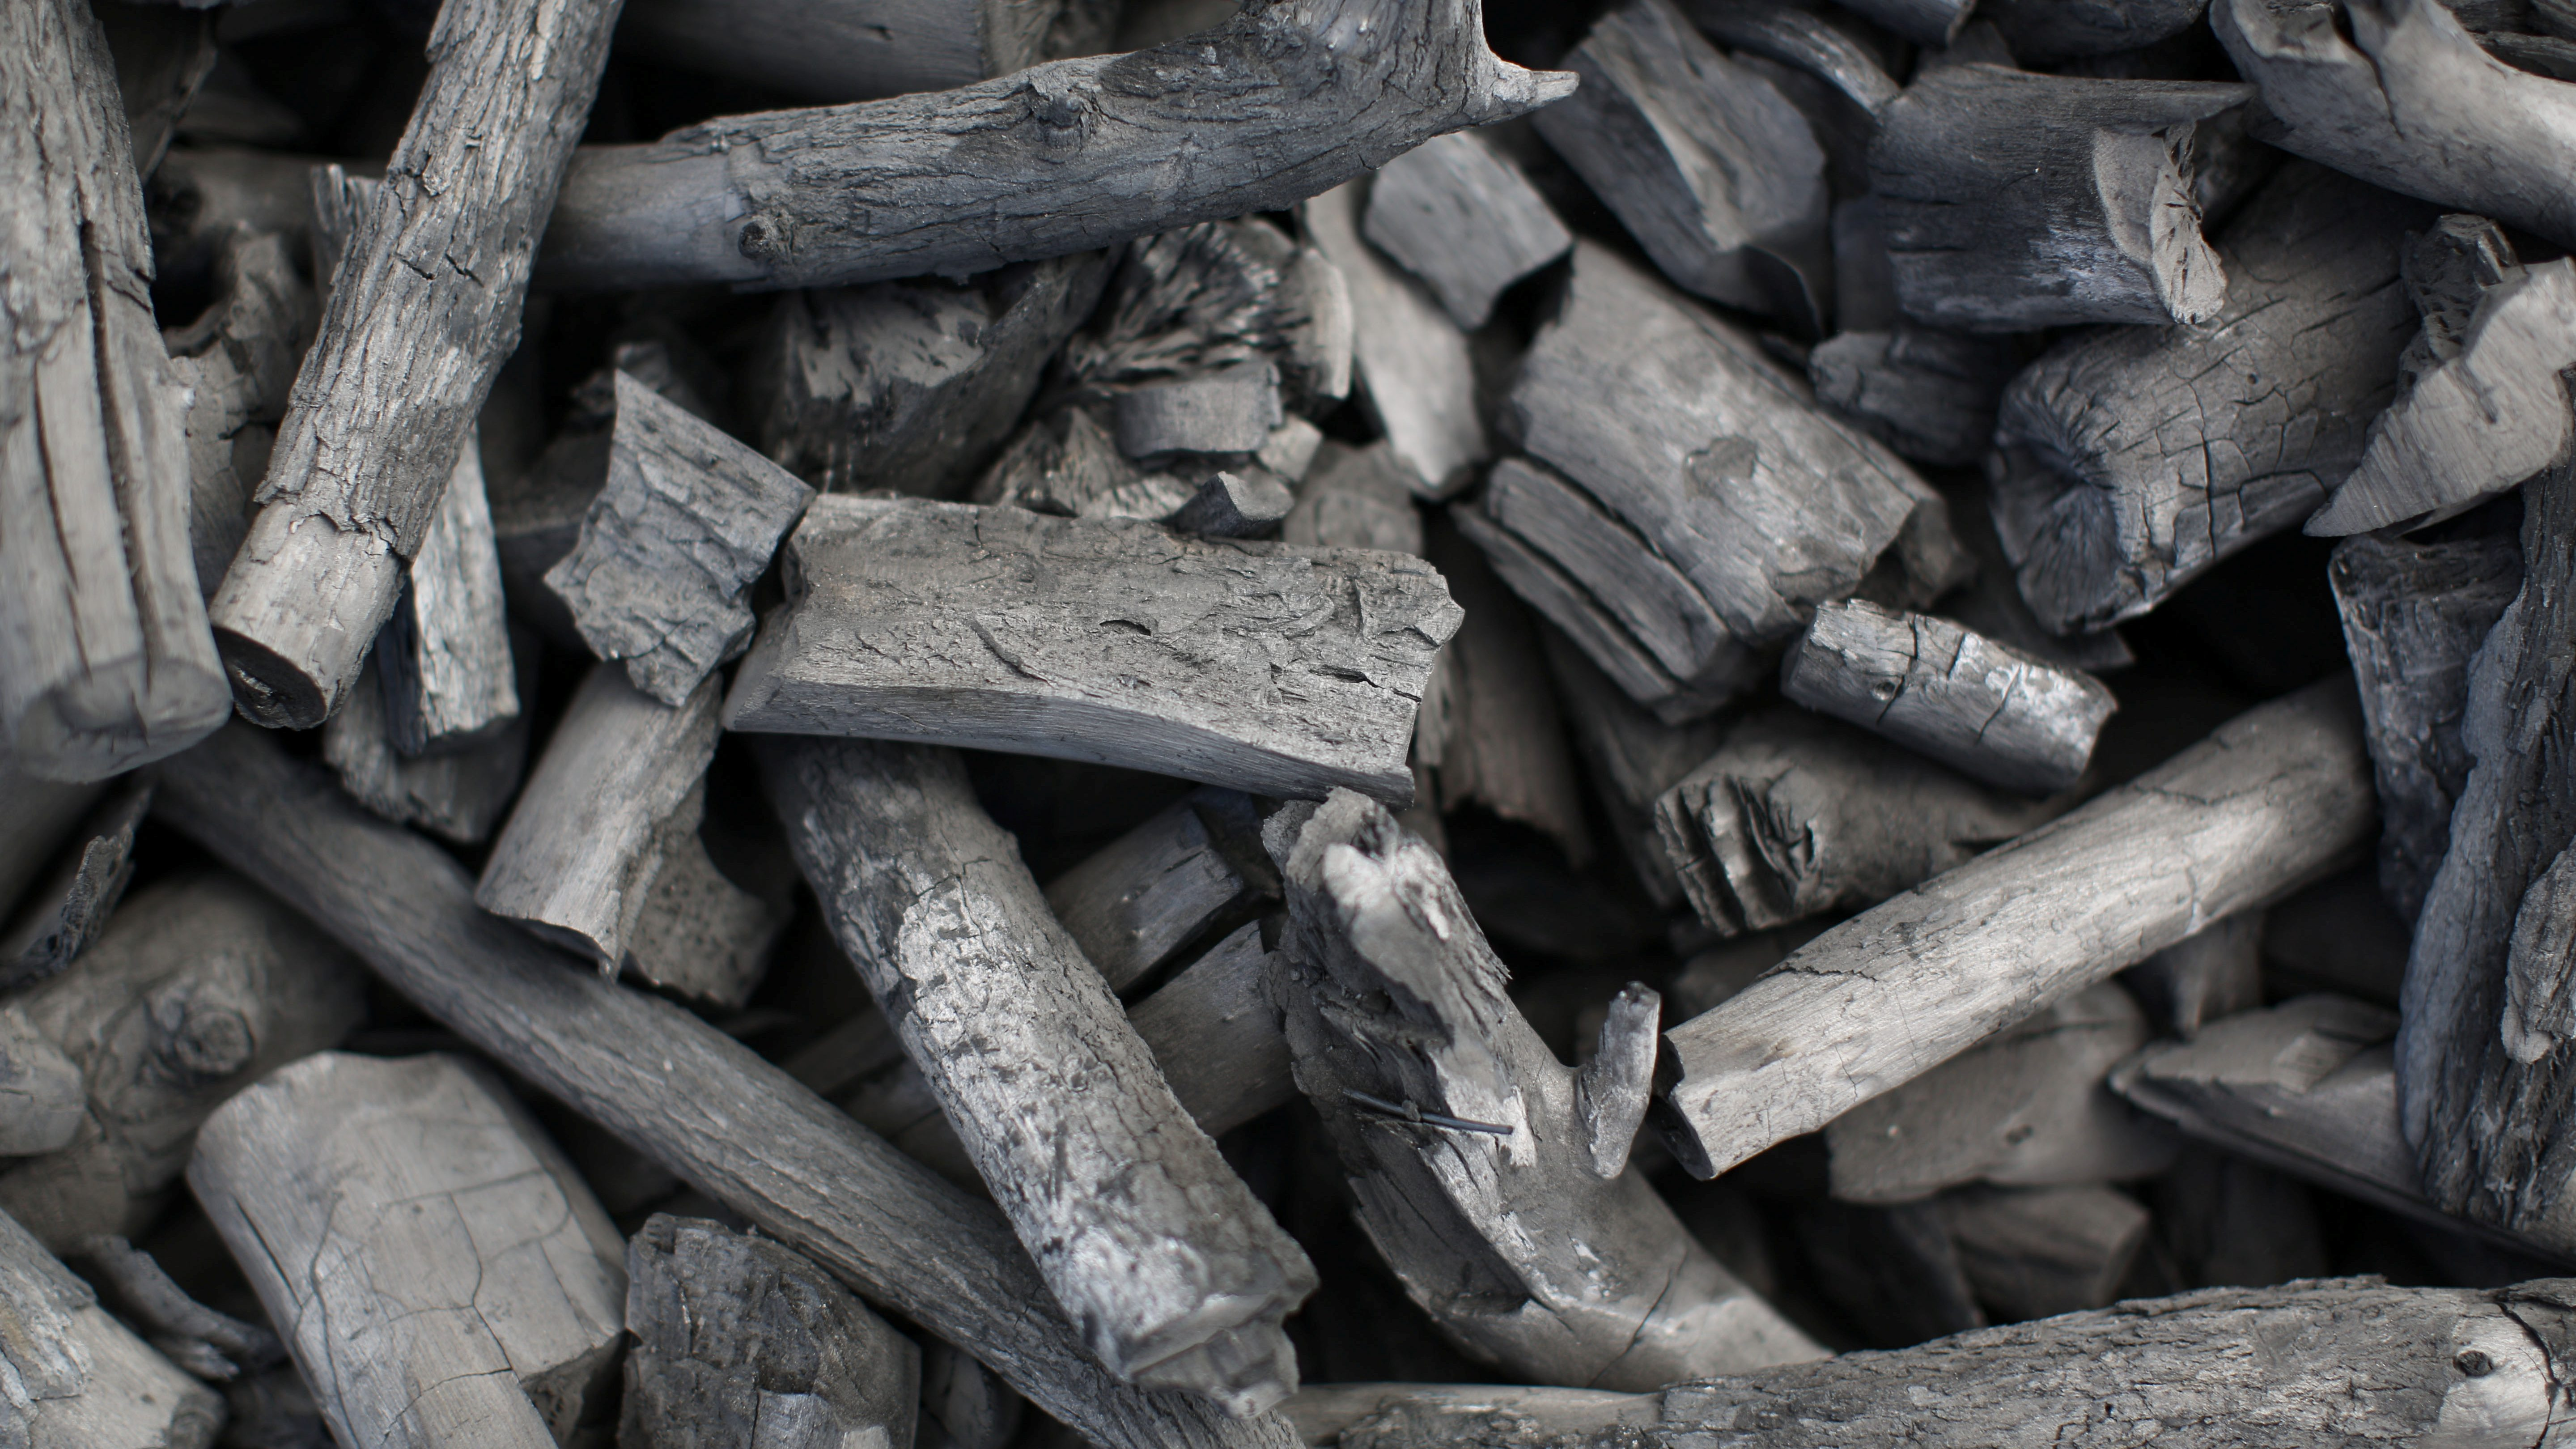 Rectangular charcoal briquettes.